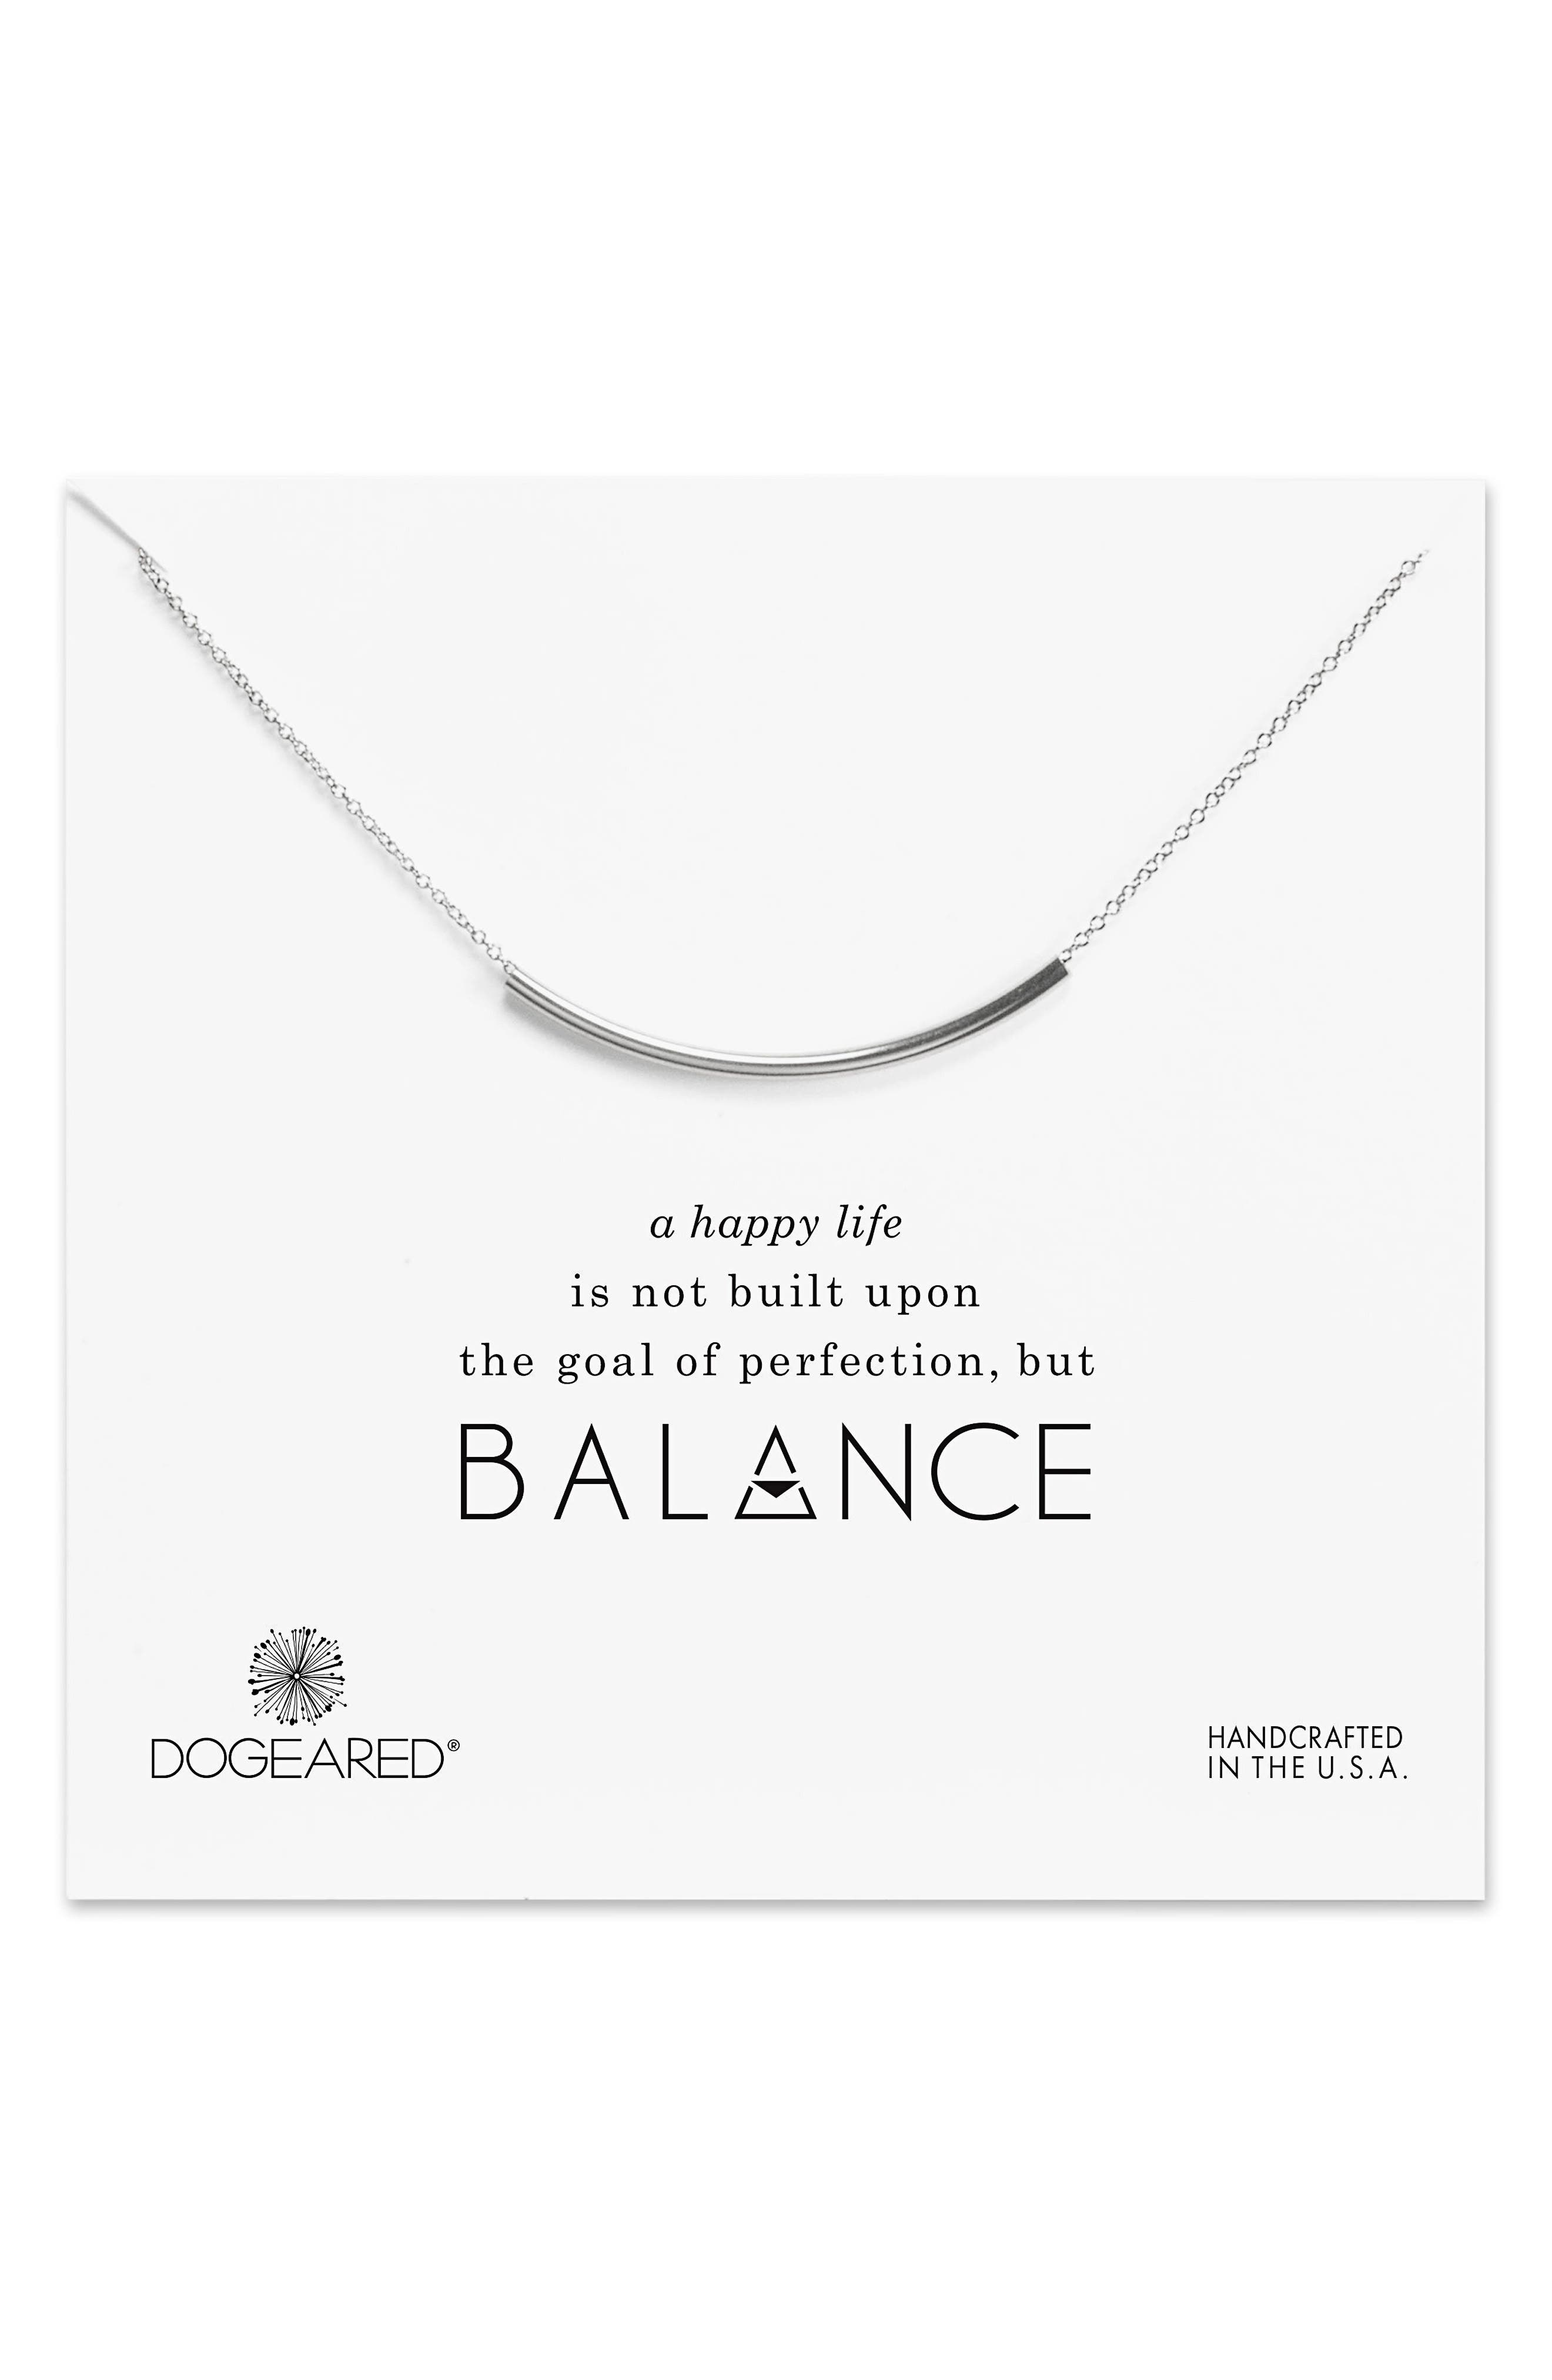 Balance Tube Chain Necklace,                         Main,                         color, Silver